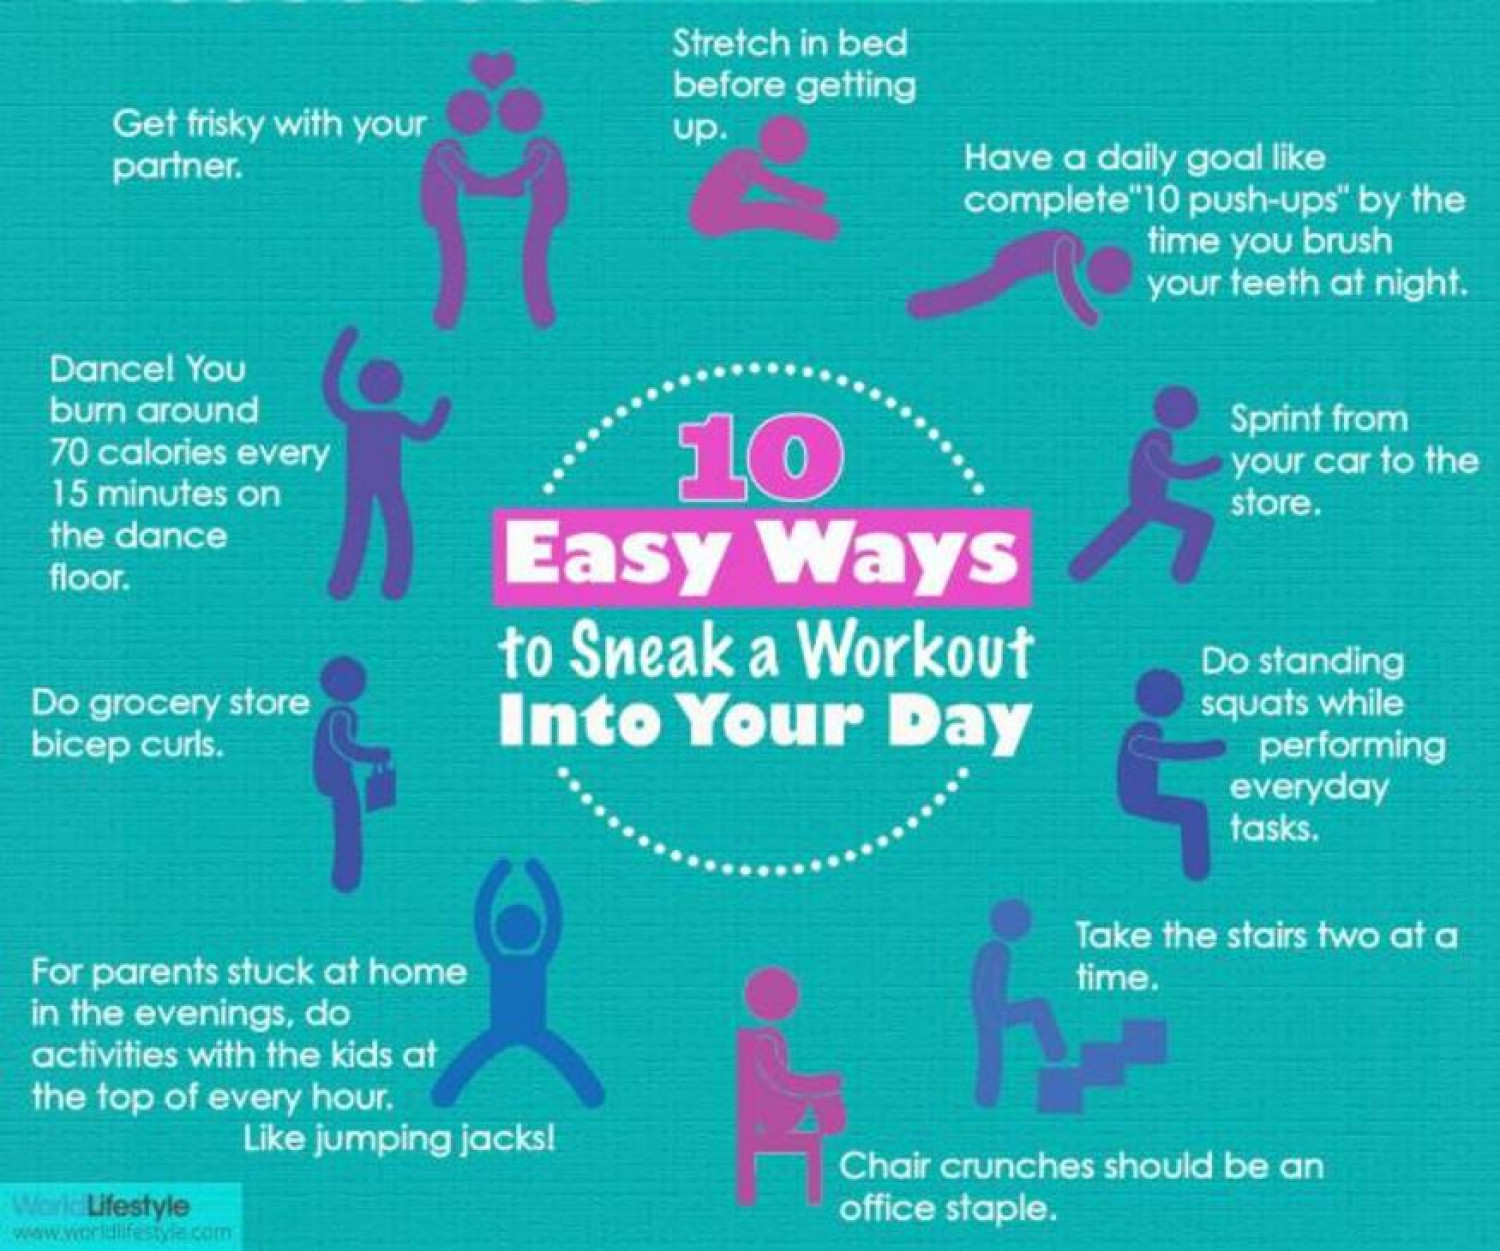 10 Easy Ways to Sneak A Workout Into Your Day Infographic